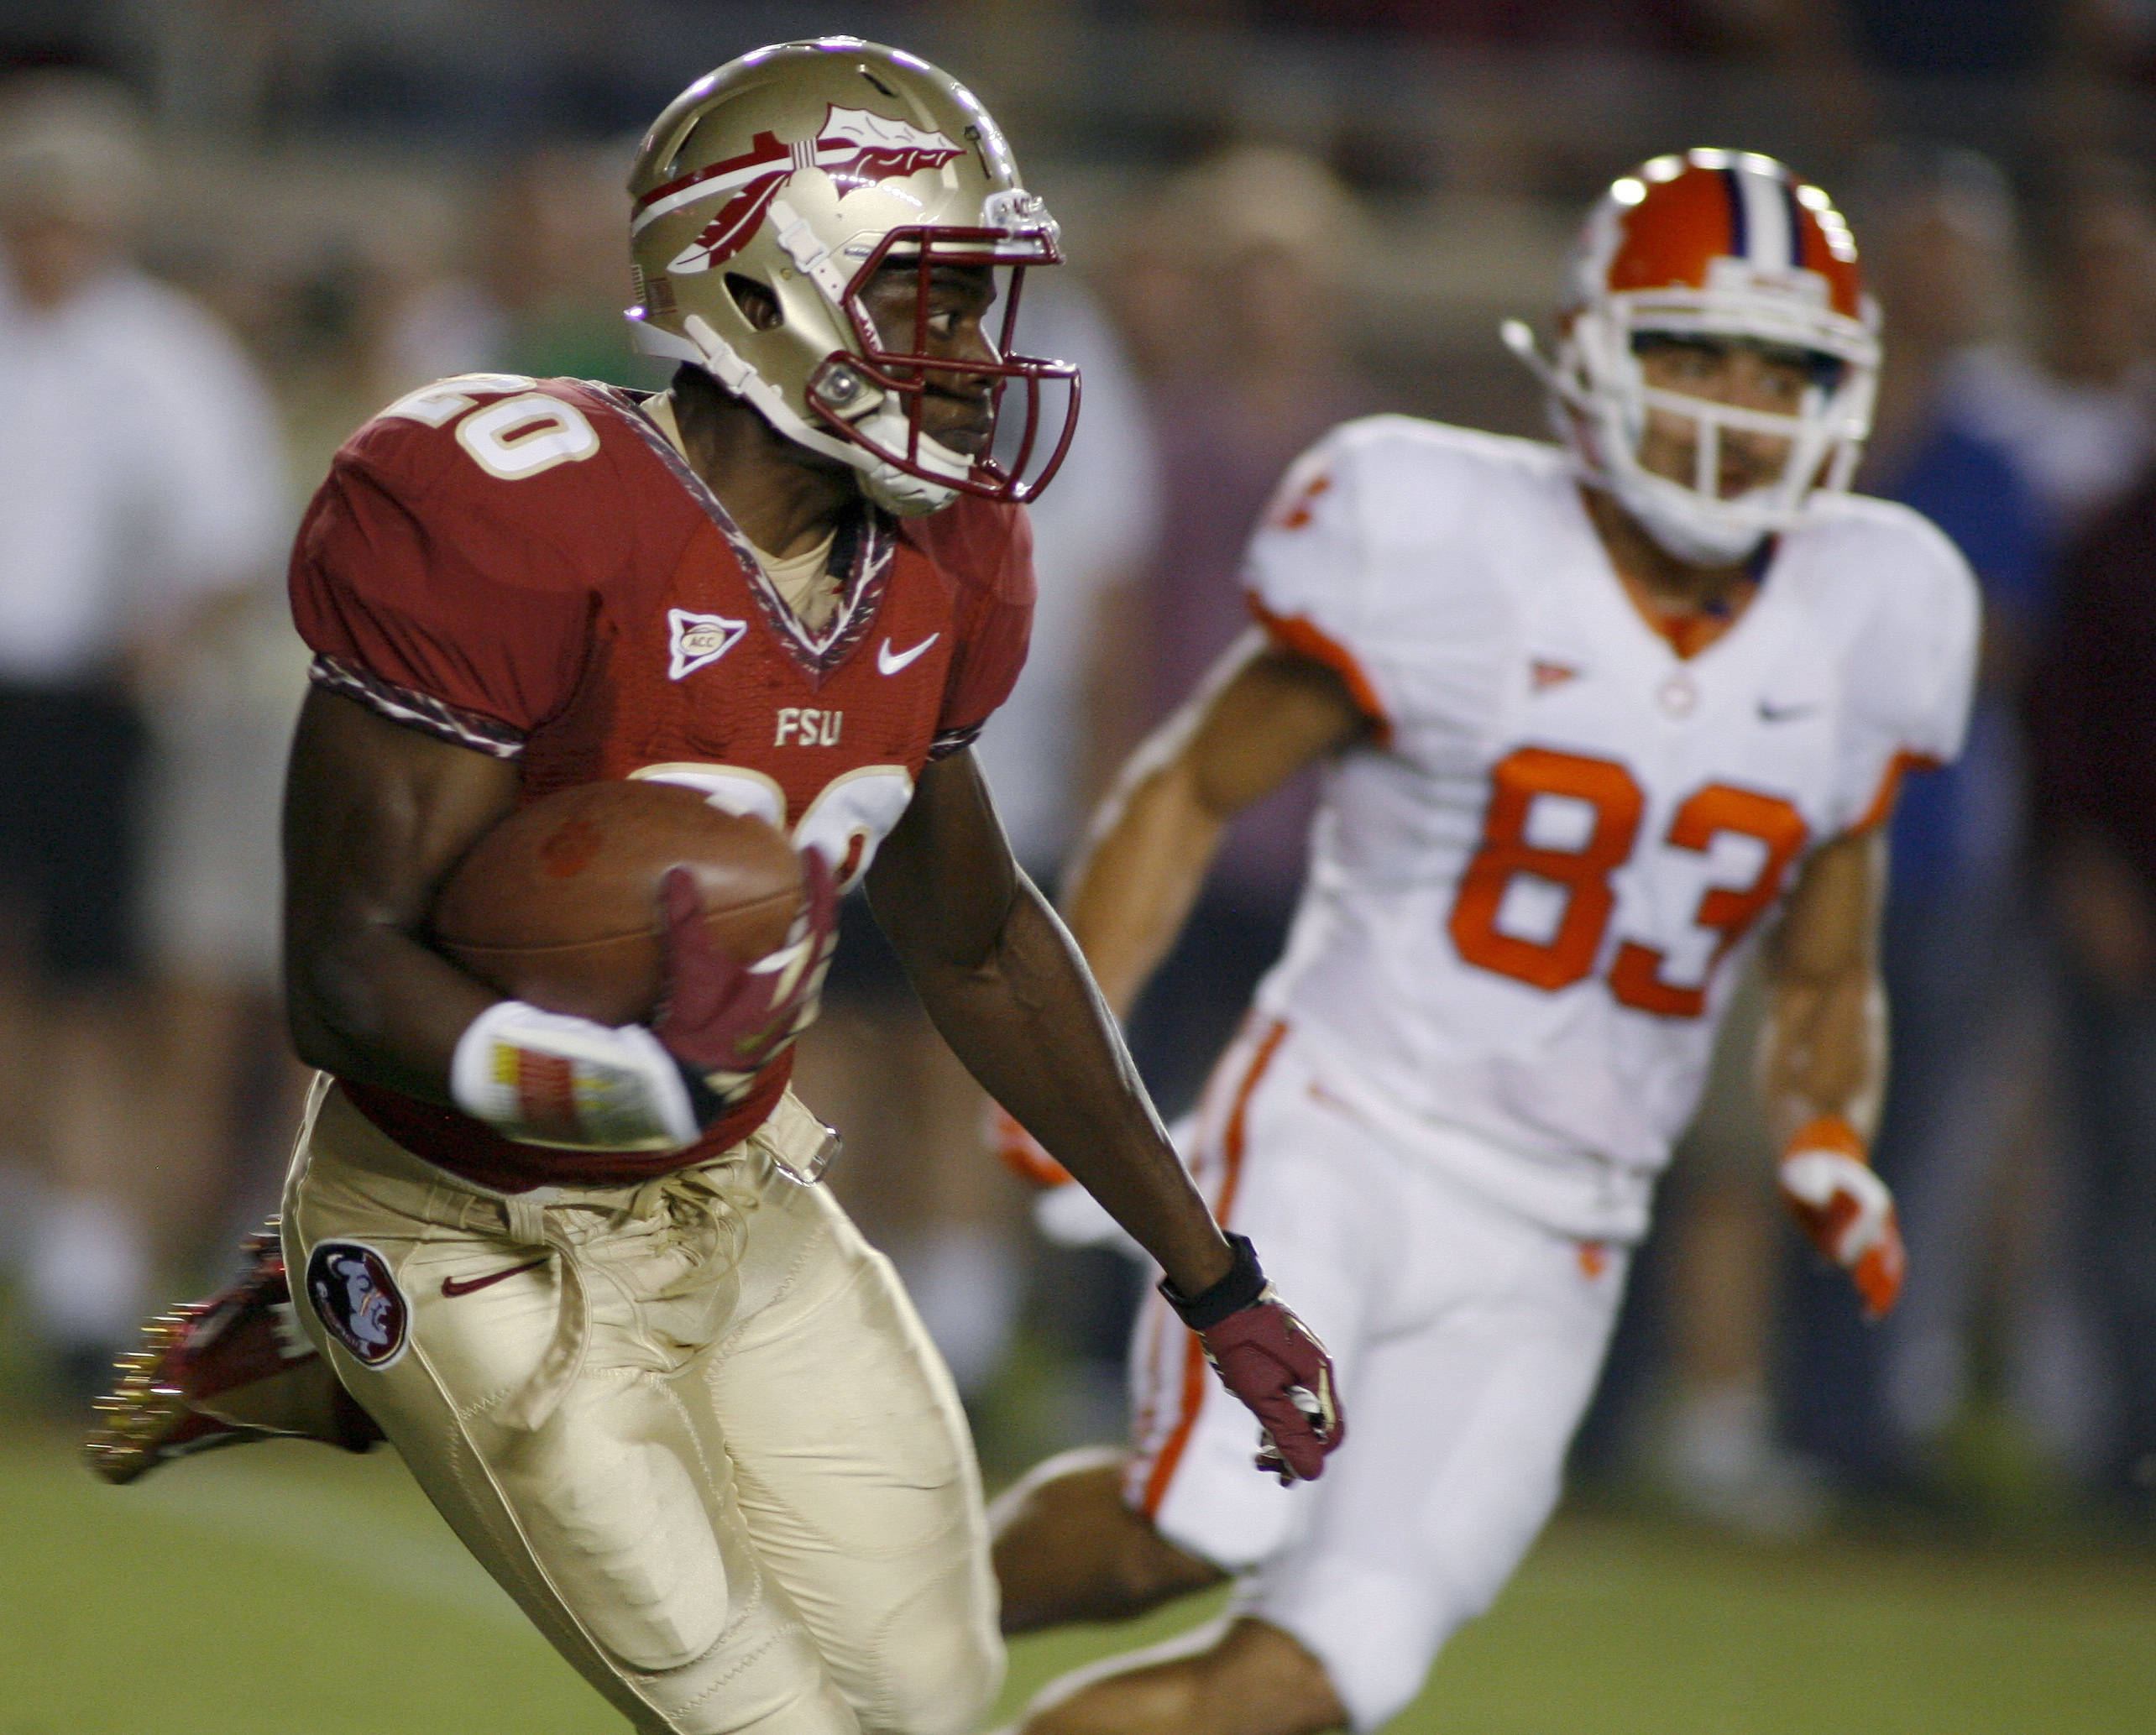 Florida State's Lamarcus Joyner (20) runs past Clemson's Daniel Rodriguez (83) on a 25-yard kickoff return. (AP Photo/Phil Sears)